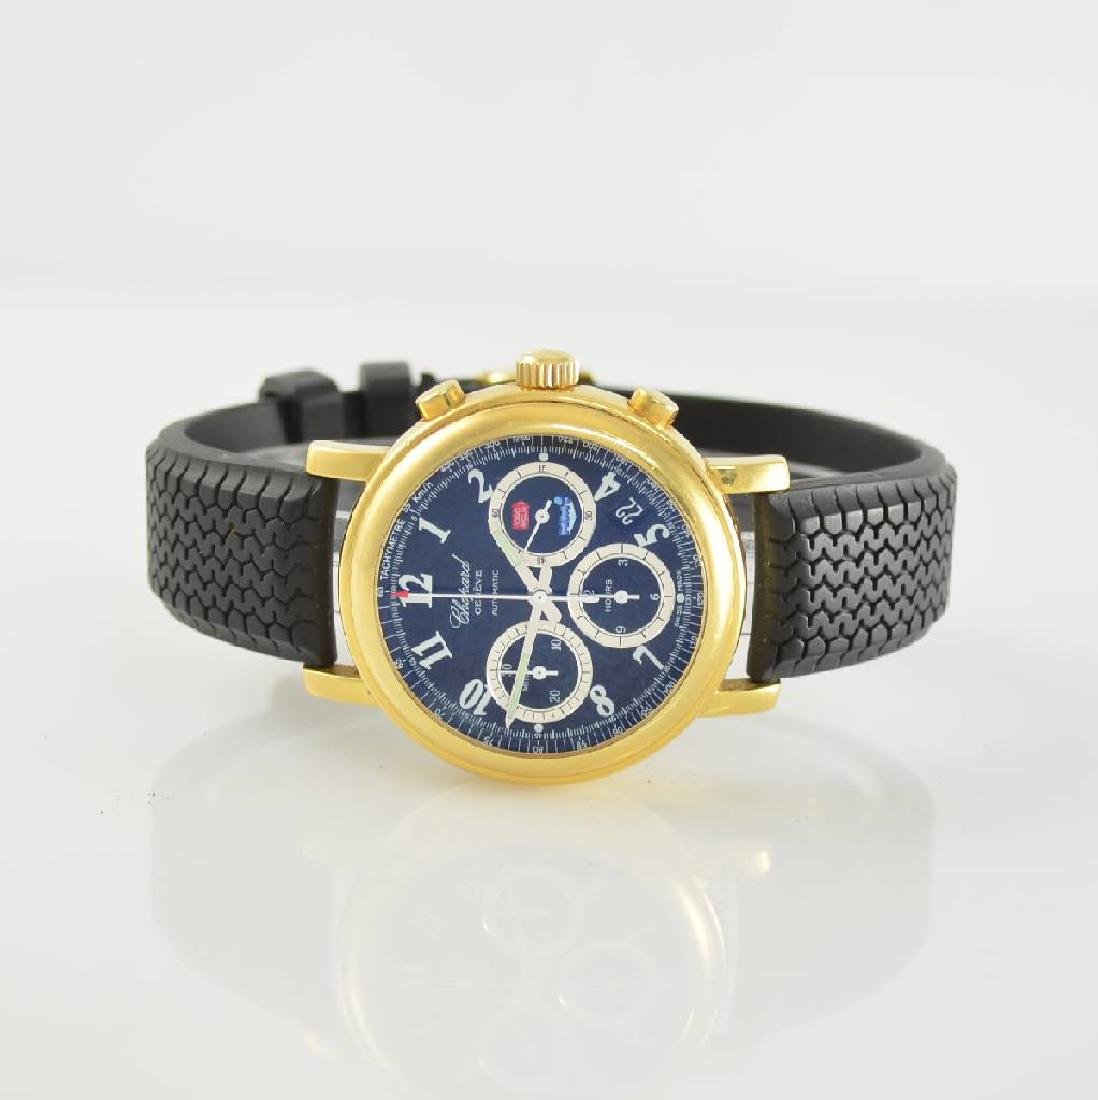 CHOPARD 18k yellow gold chronograph Mille Miglia